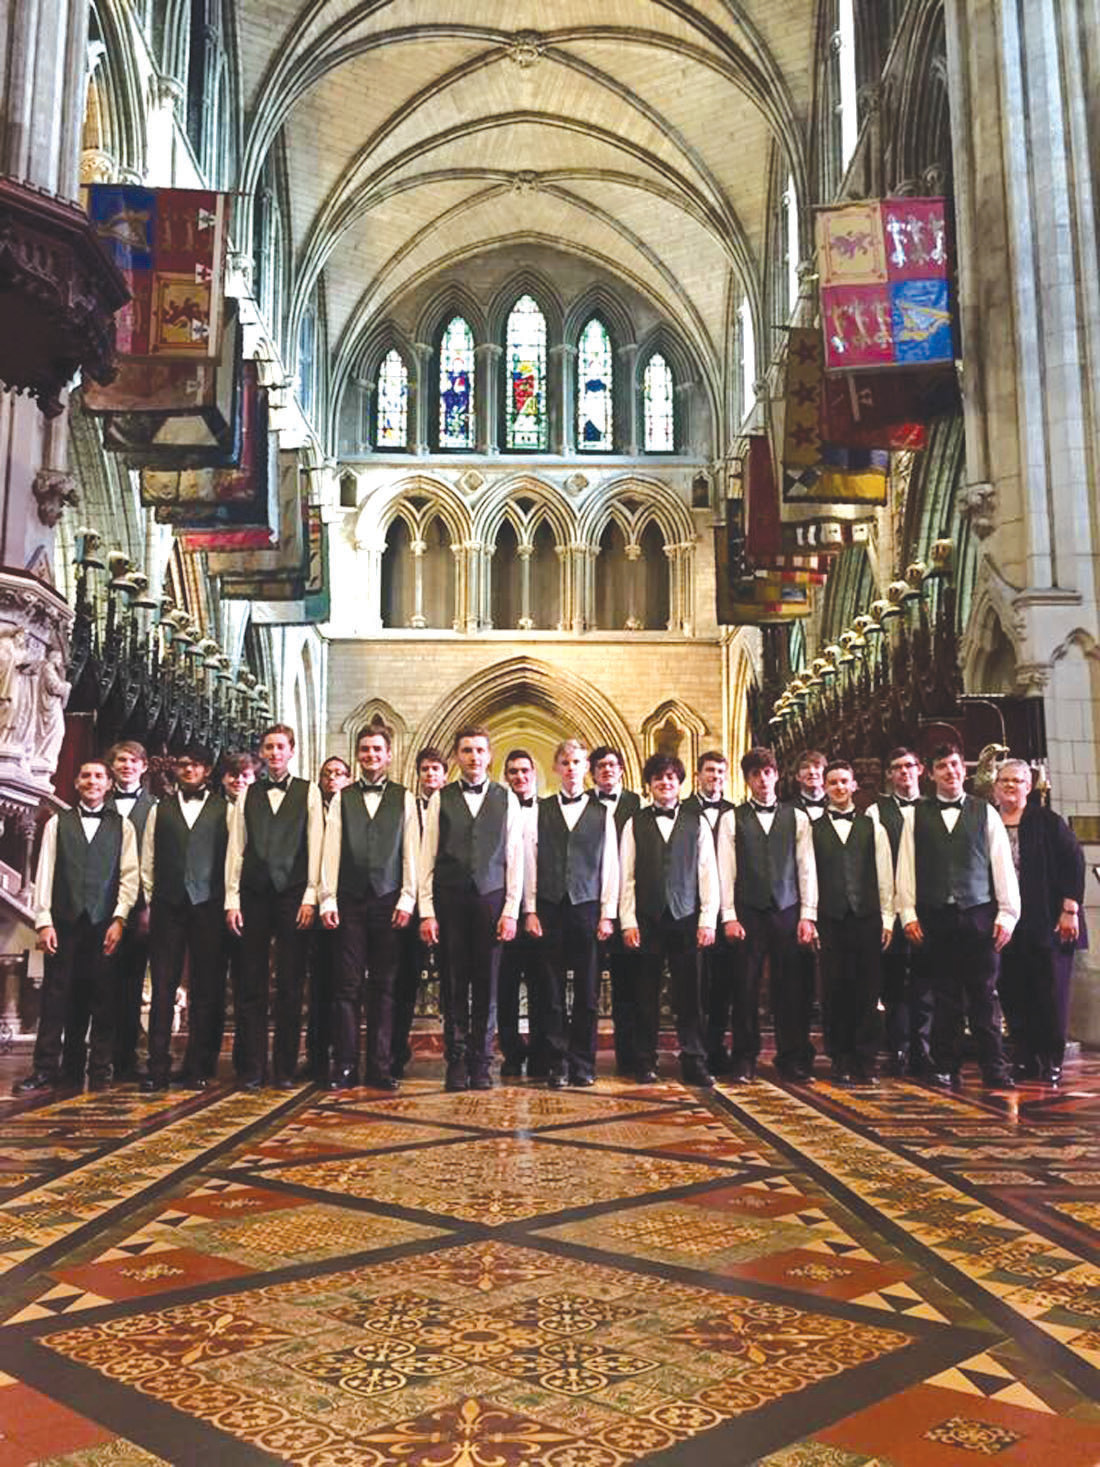 FINAL PERFORMANCE: The chorus closed out their visit to Ireland with a performance at St. Patrick's, The National Cathedral of the Church of Ireland.